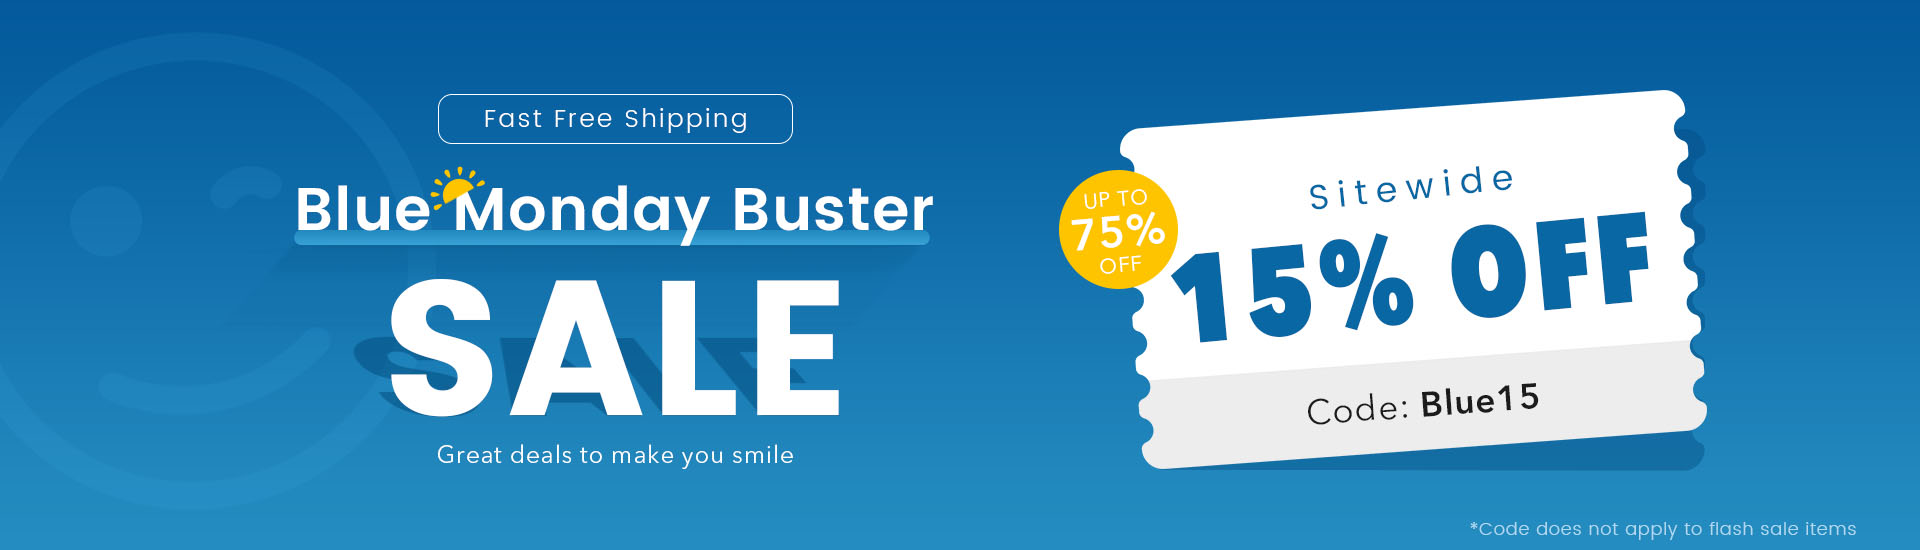 Blue Monday Buster Sale